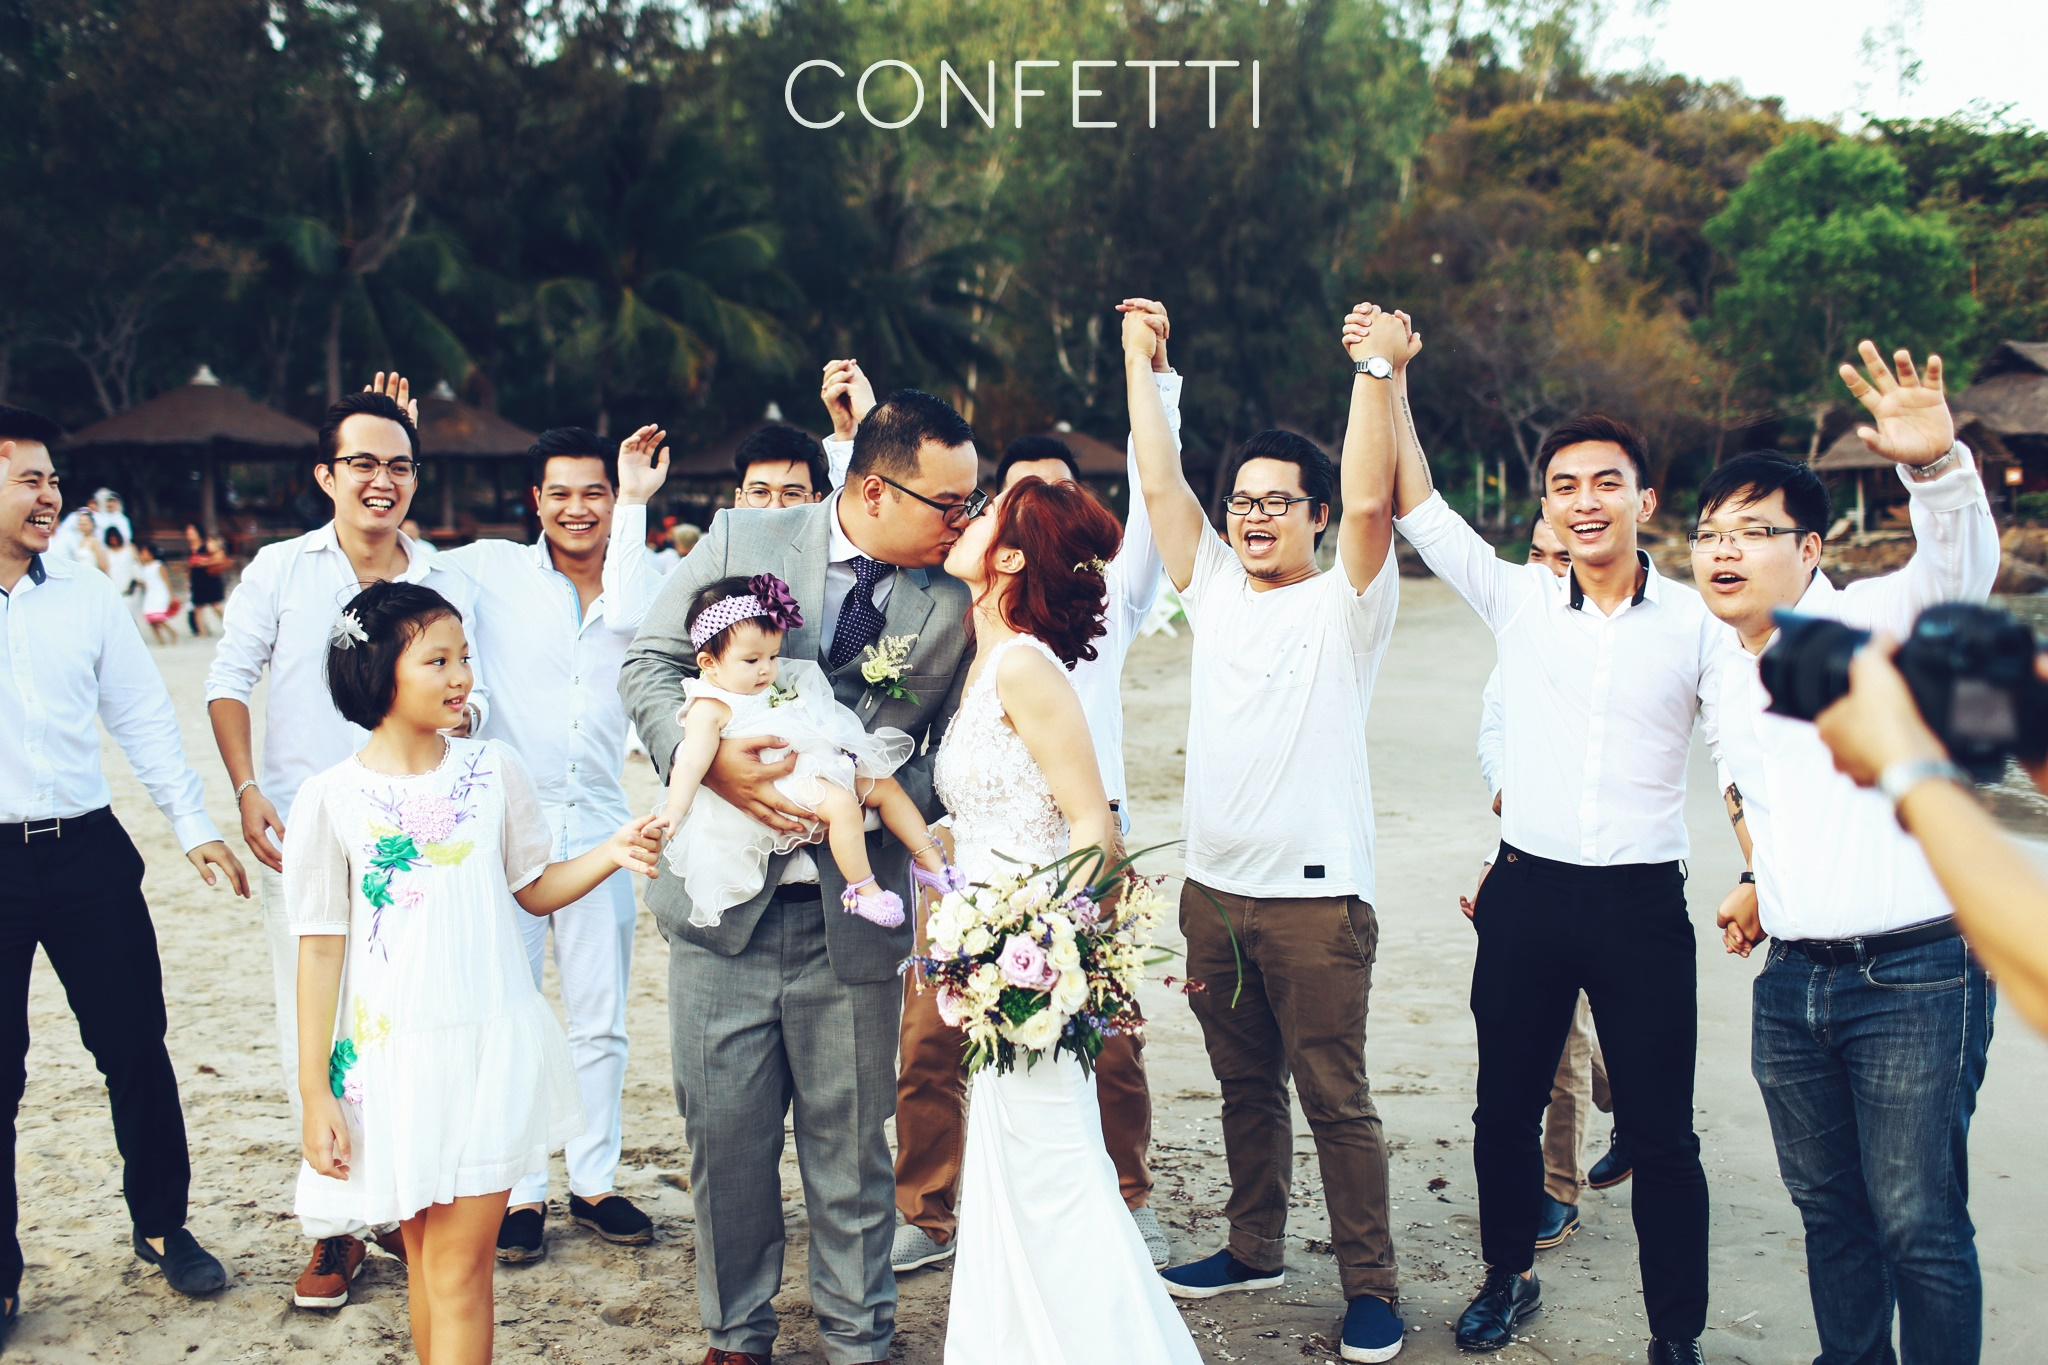 Confetti-destination-wedding-Love seed (5)